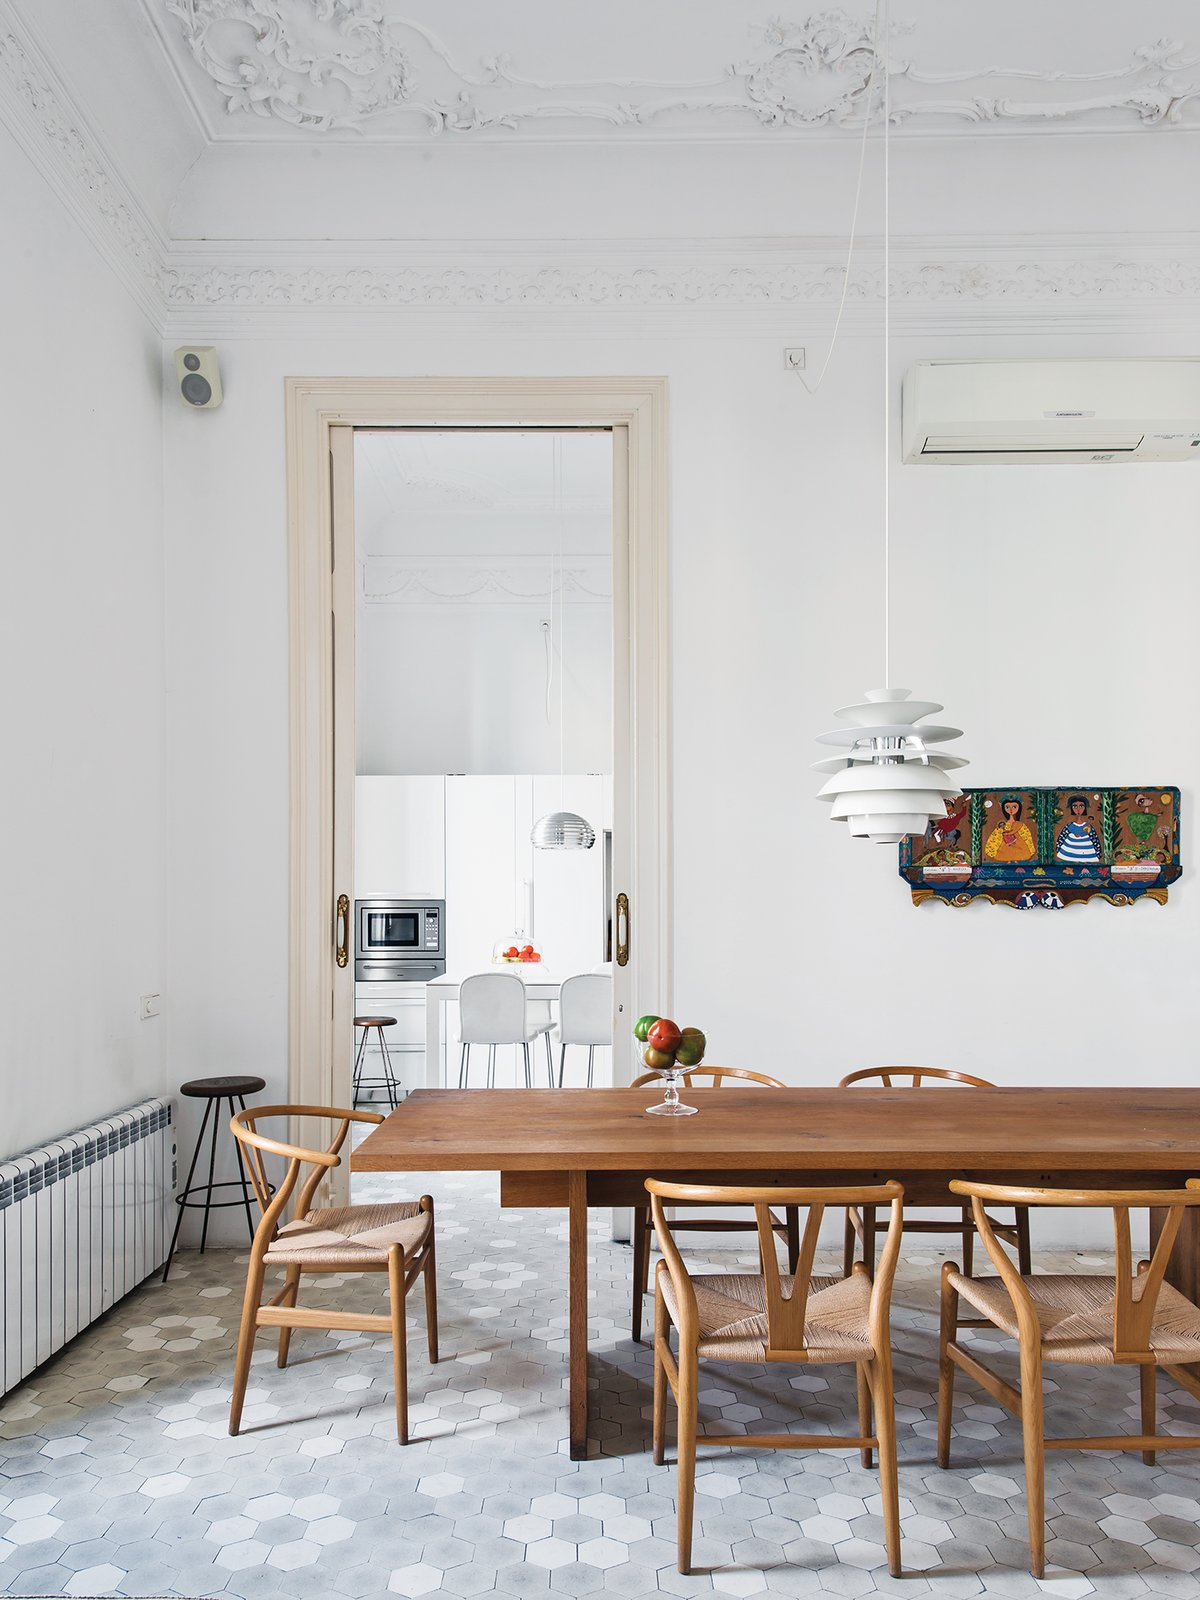 #interior #dining #modern #modernarchitecture #table #diningroom #wood #diningtable #HansWegner #Wishbone #chairs #minimal #Barcelona #Spain #PoulHenningsen #PhilippMainzer #E15 #tiles  In the Home from Ideas for dining tables